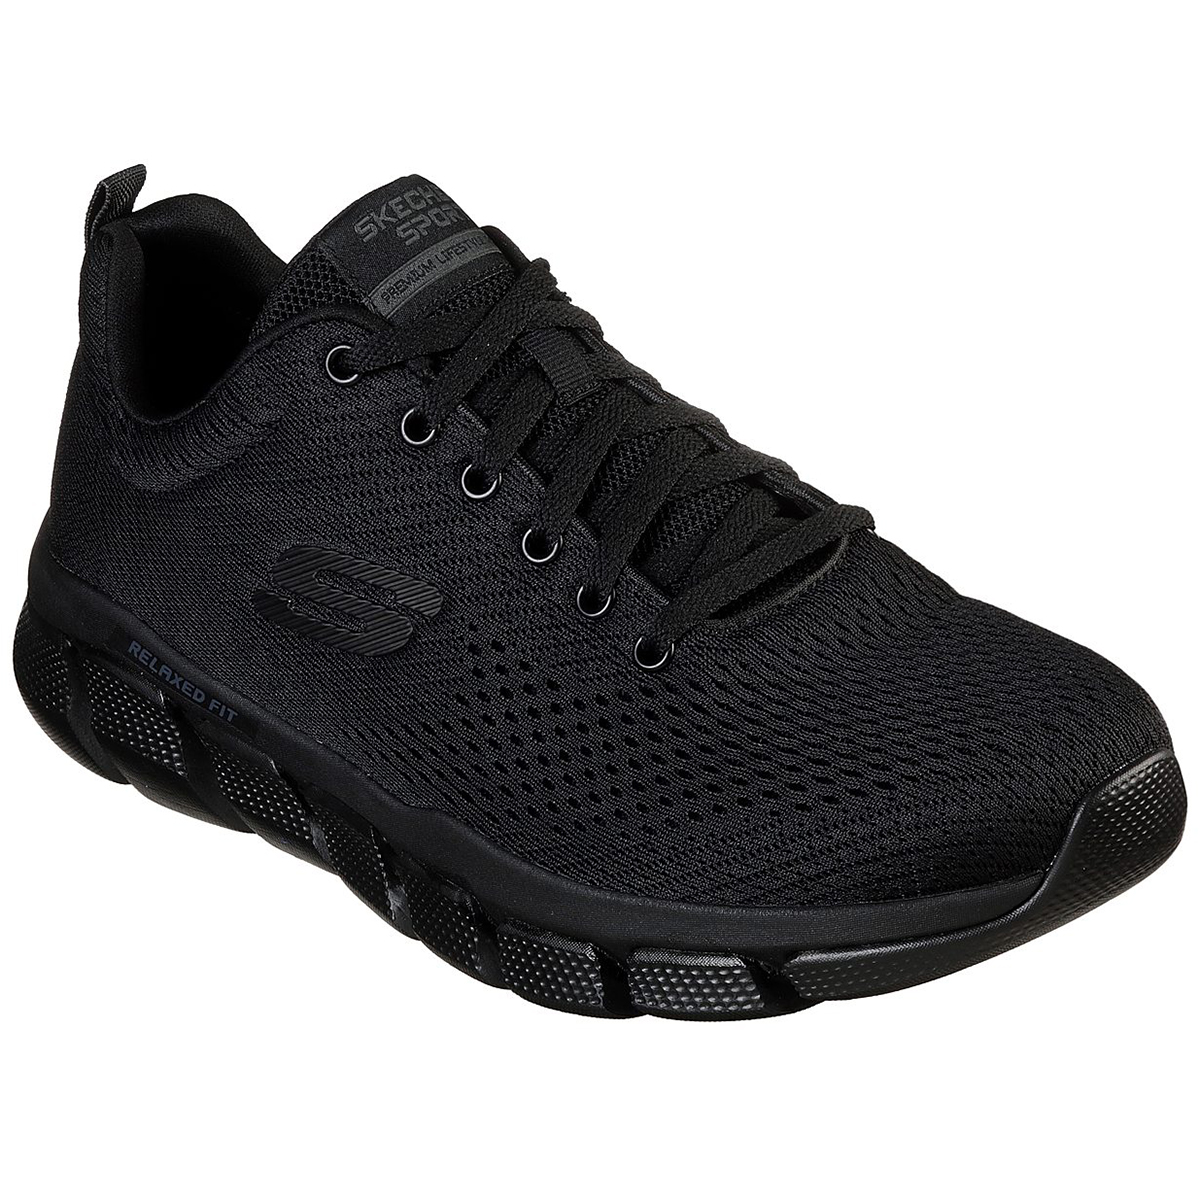 Skechers Men's Relaxed Fit Skech-Flex 3.0 Verko Lace Up Sneakers, Wide - Black, 9